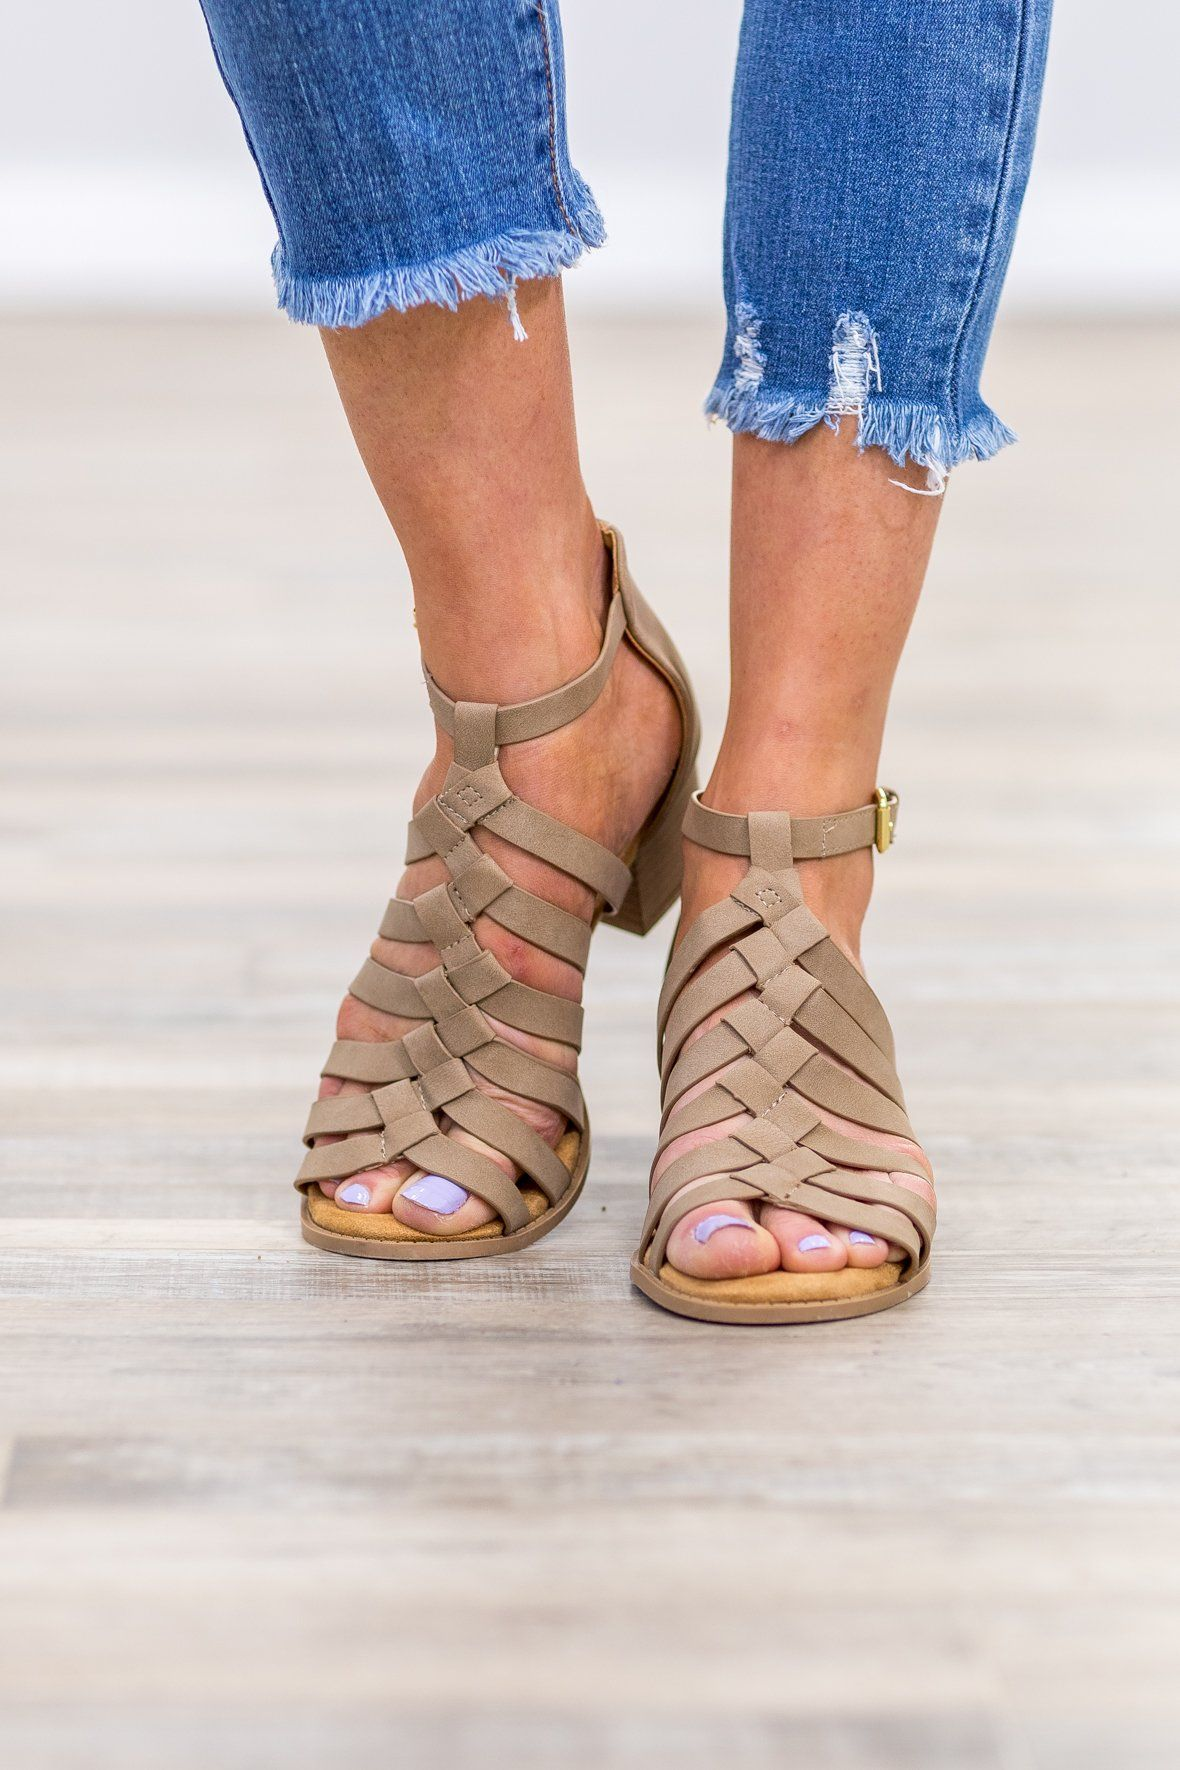 8733b1b4a Beyond This World Open Toe Strappy Sandal Heels in Taupe - Filly Flair